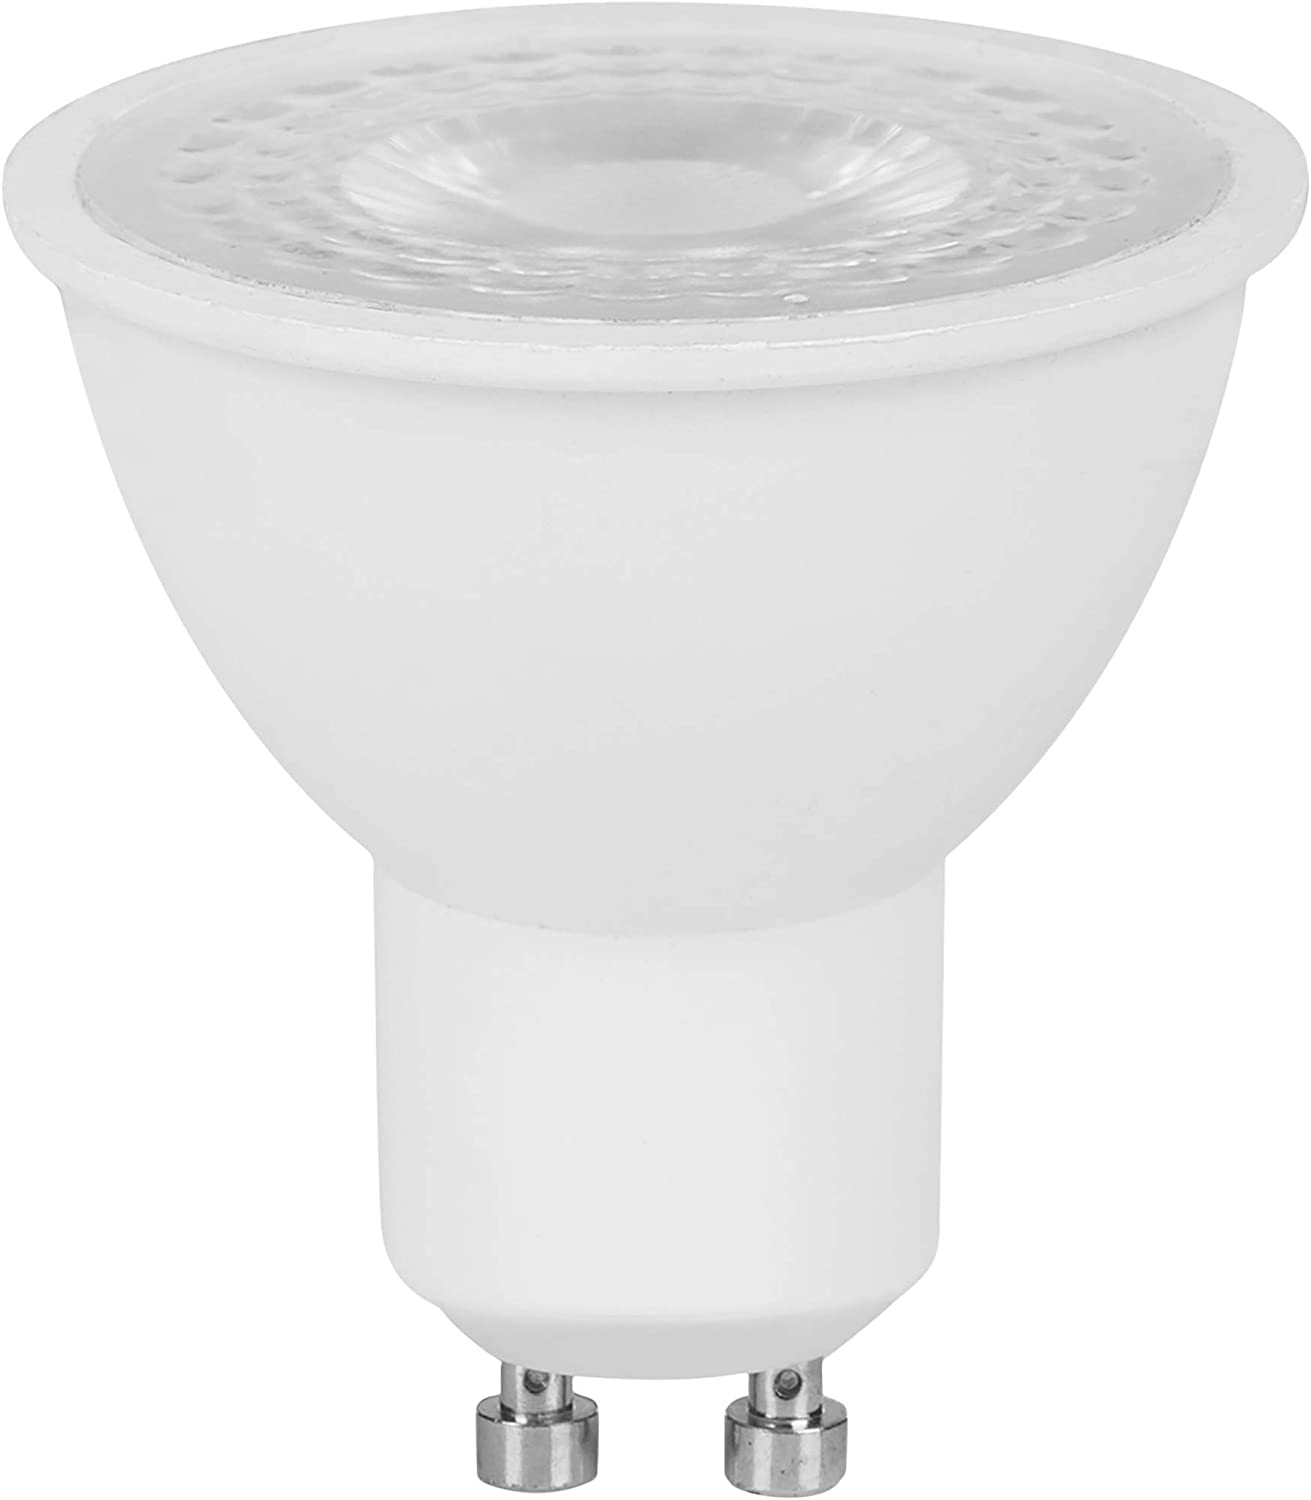 B22 fitting variable white and colour Smartwares Smart bulb